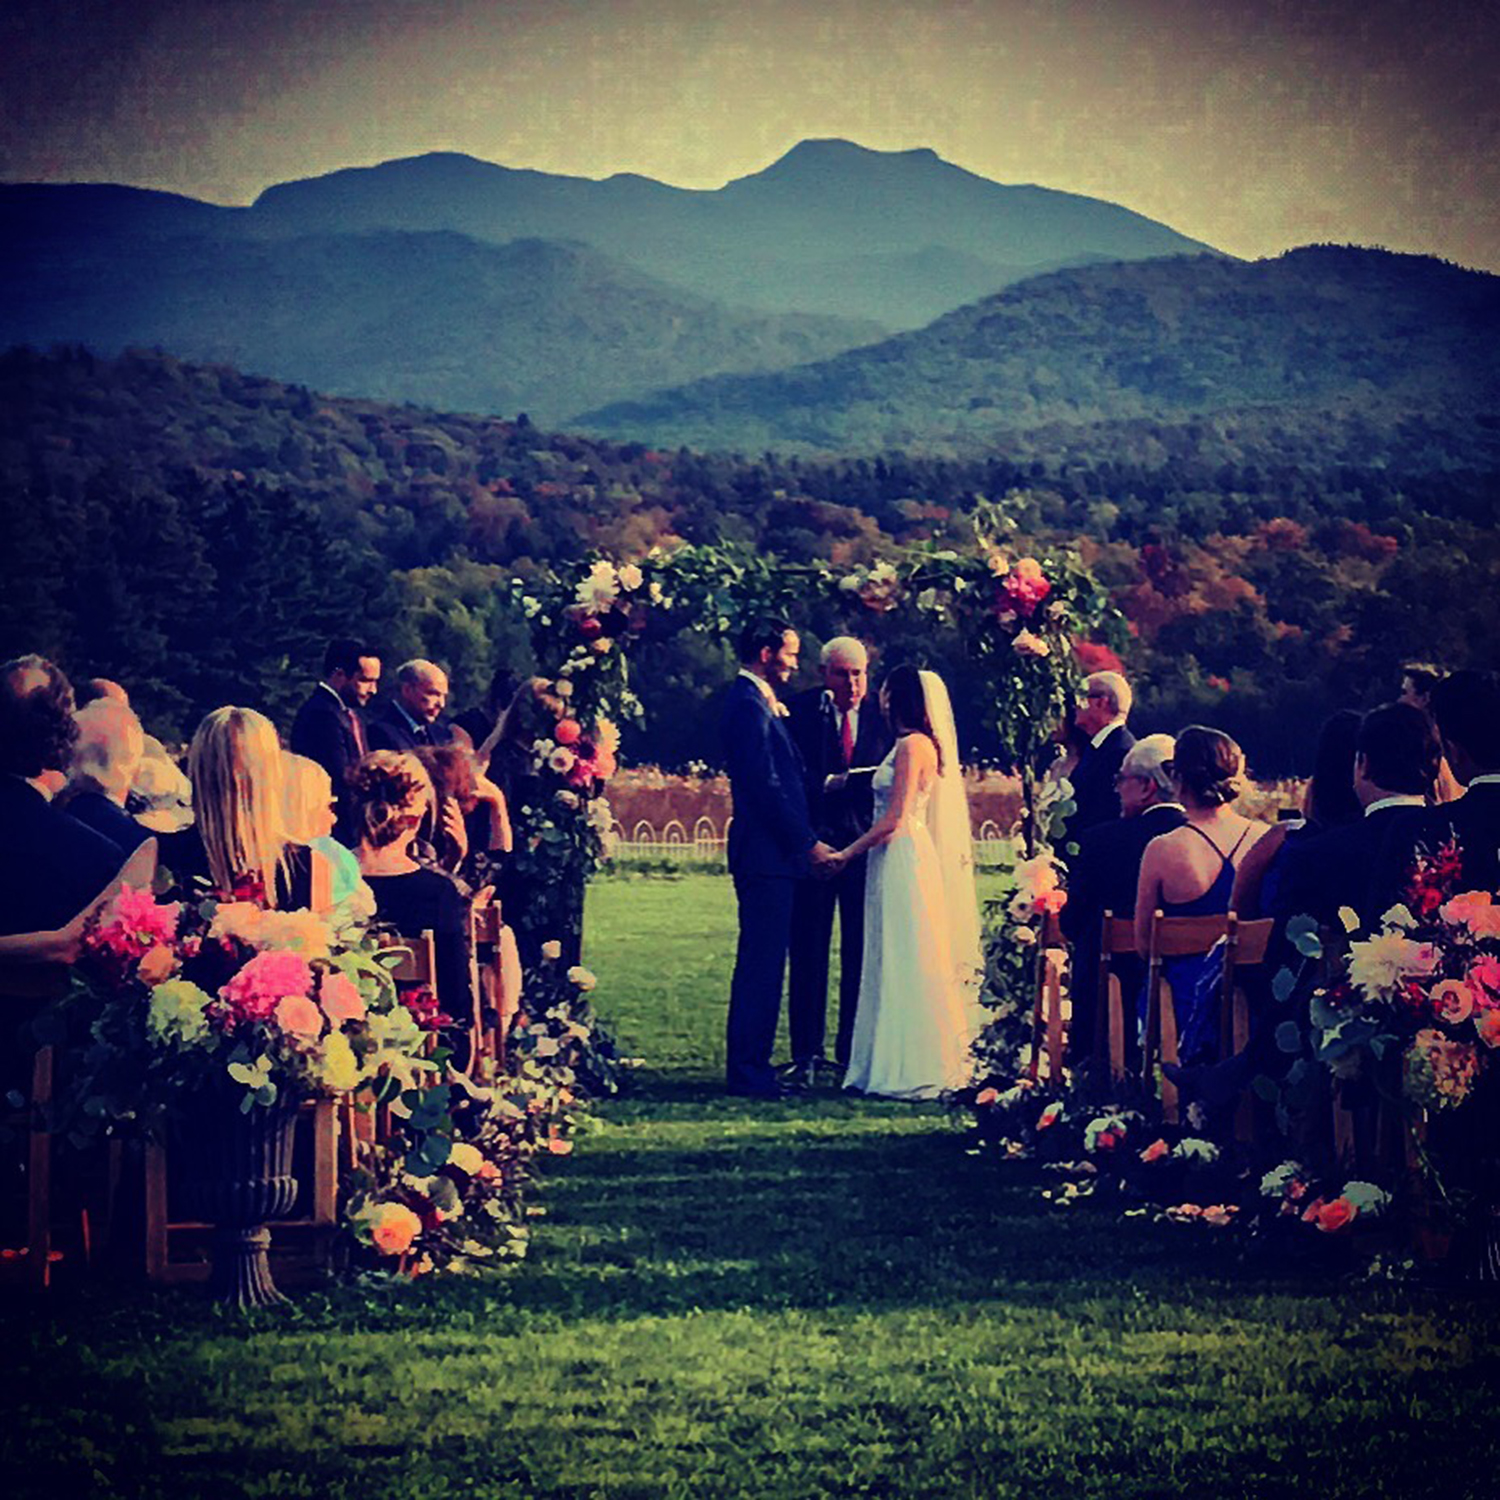 Vermont's Tallest Peak, Mt. Mansfield is a stunning backdrop for your Stowe Wedding ceremony on the Great Lawn! Image: Steve DePalma iPhone